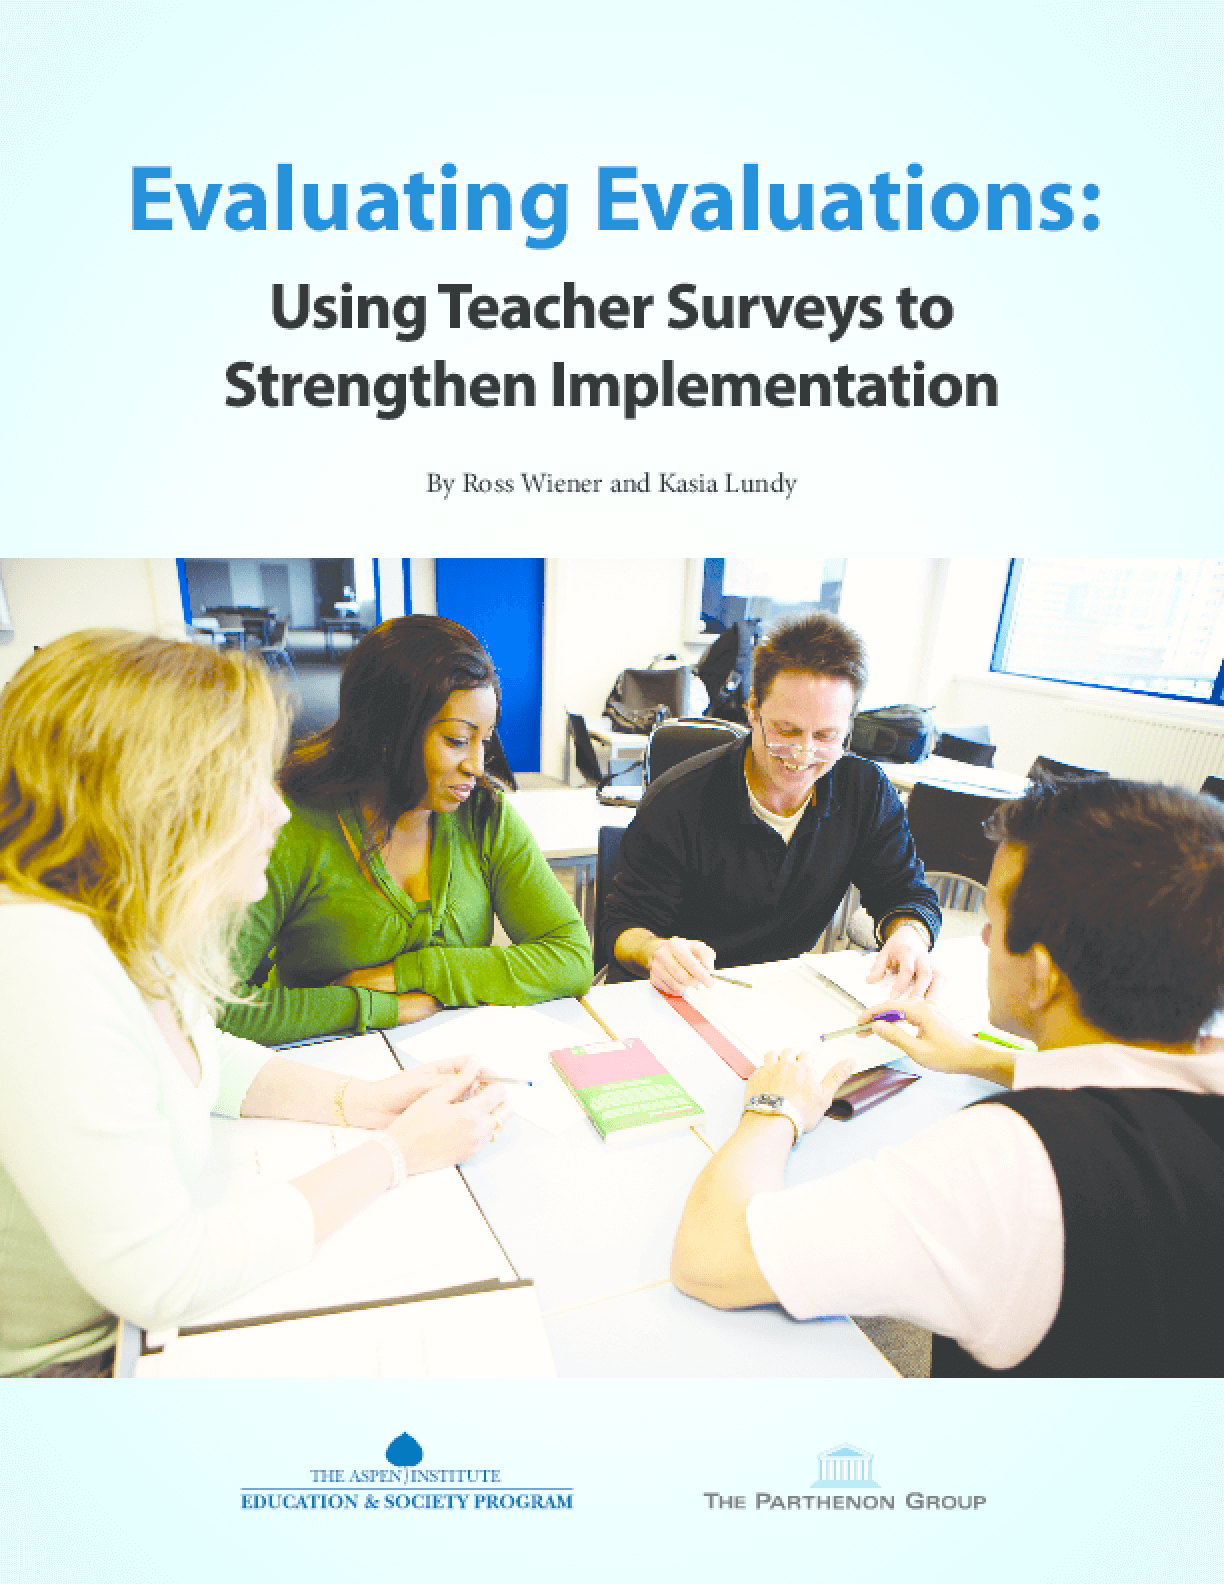 Evaluating Evaluations: Using Teacher Surveys to Strengthen Implementation